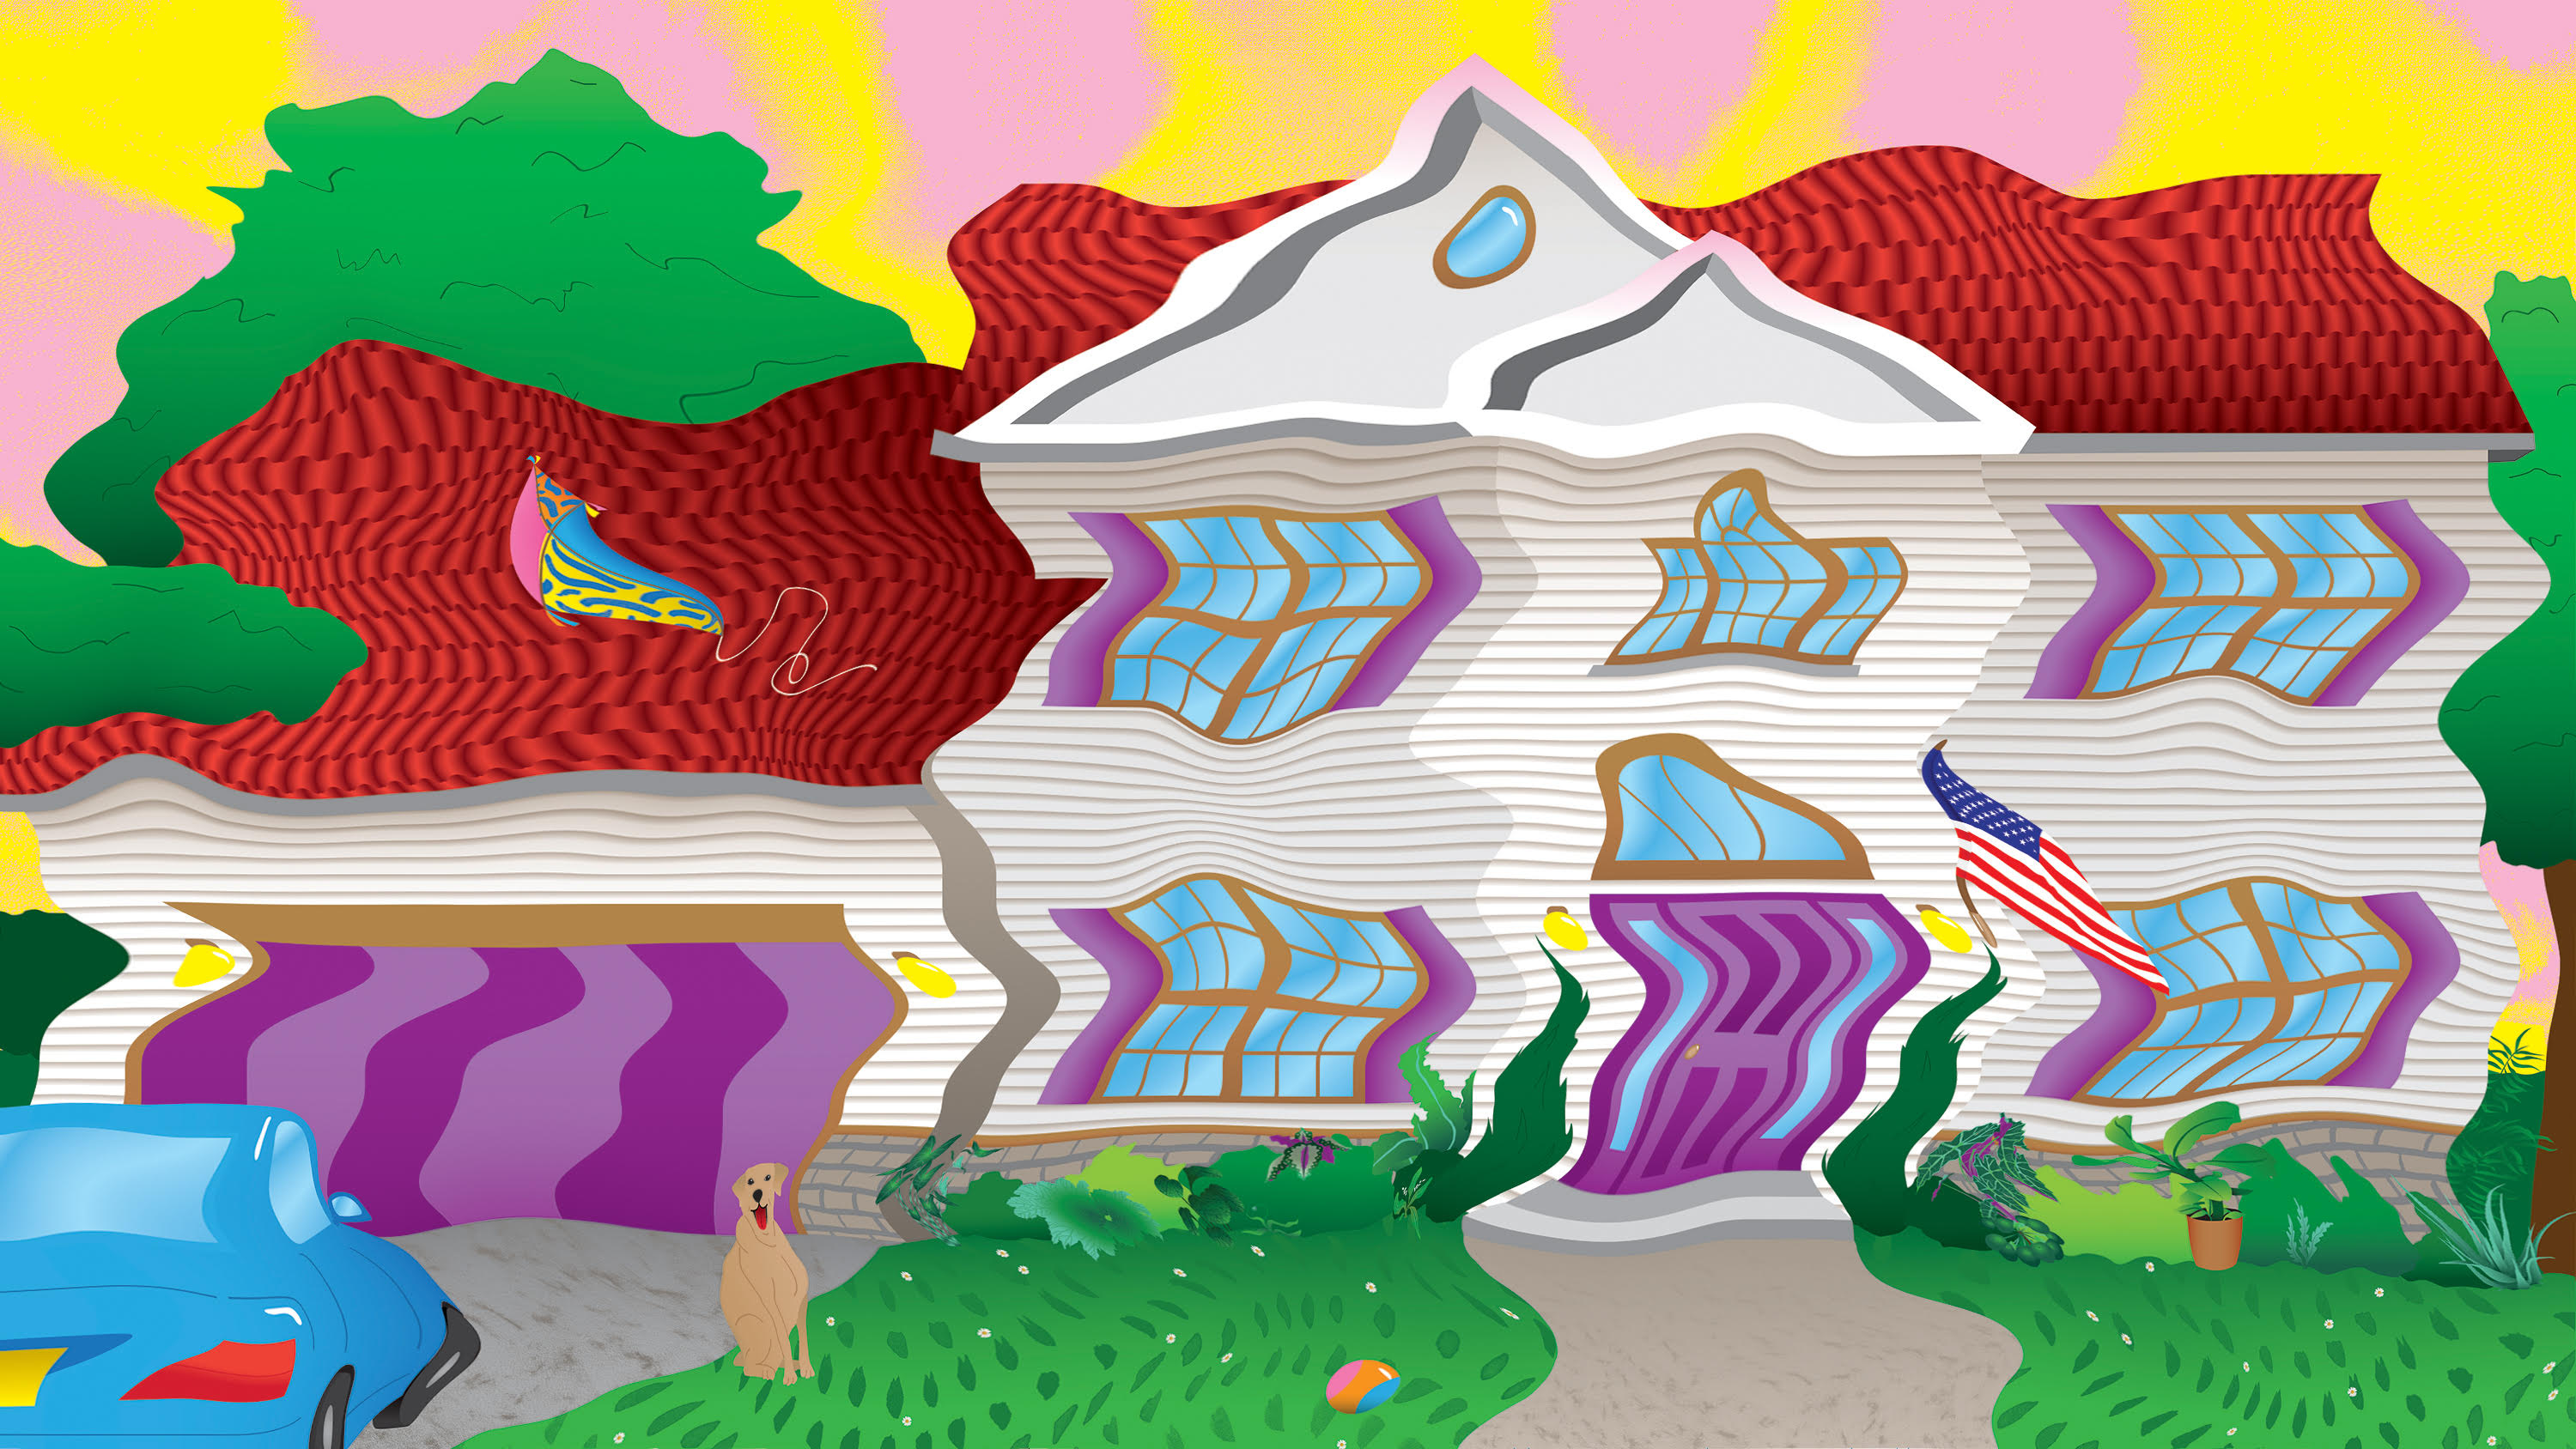 A middle-class house is shown through a wavy mirage.